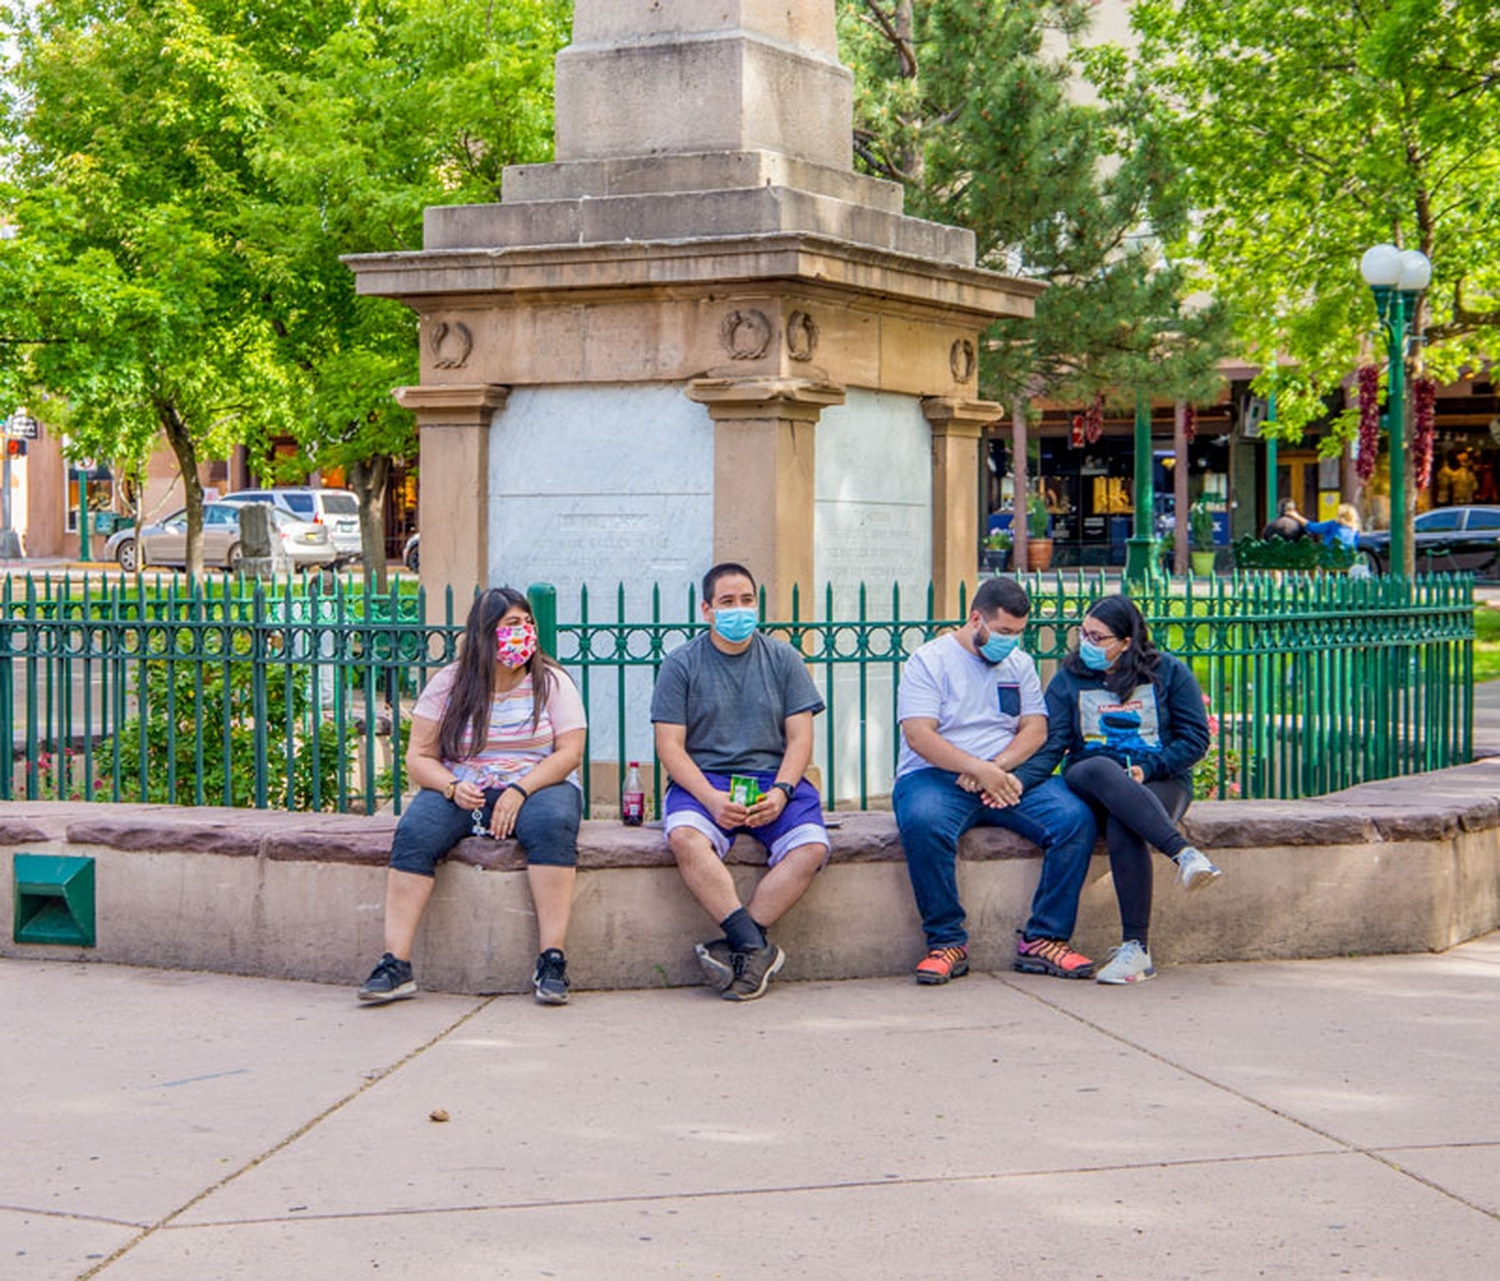 Modesto Molendrez, center right, sits along the obelisk at the center of the plaza with his wife Yuritzy, far right, his cousin Diego Becerra, center left, and Becerra's wife, Jasmine, far left.